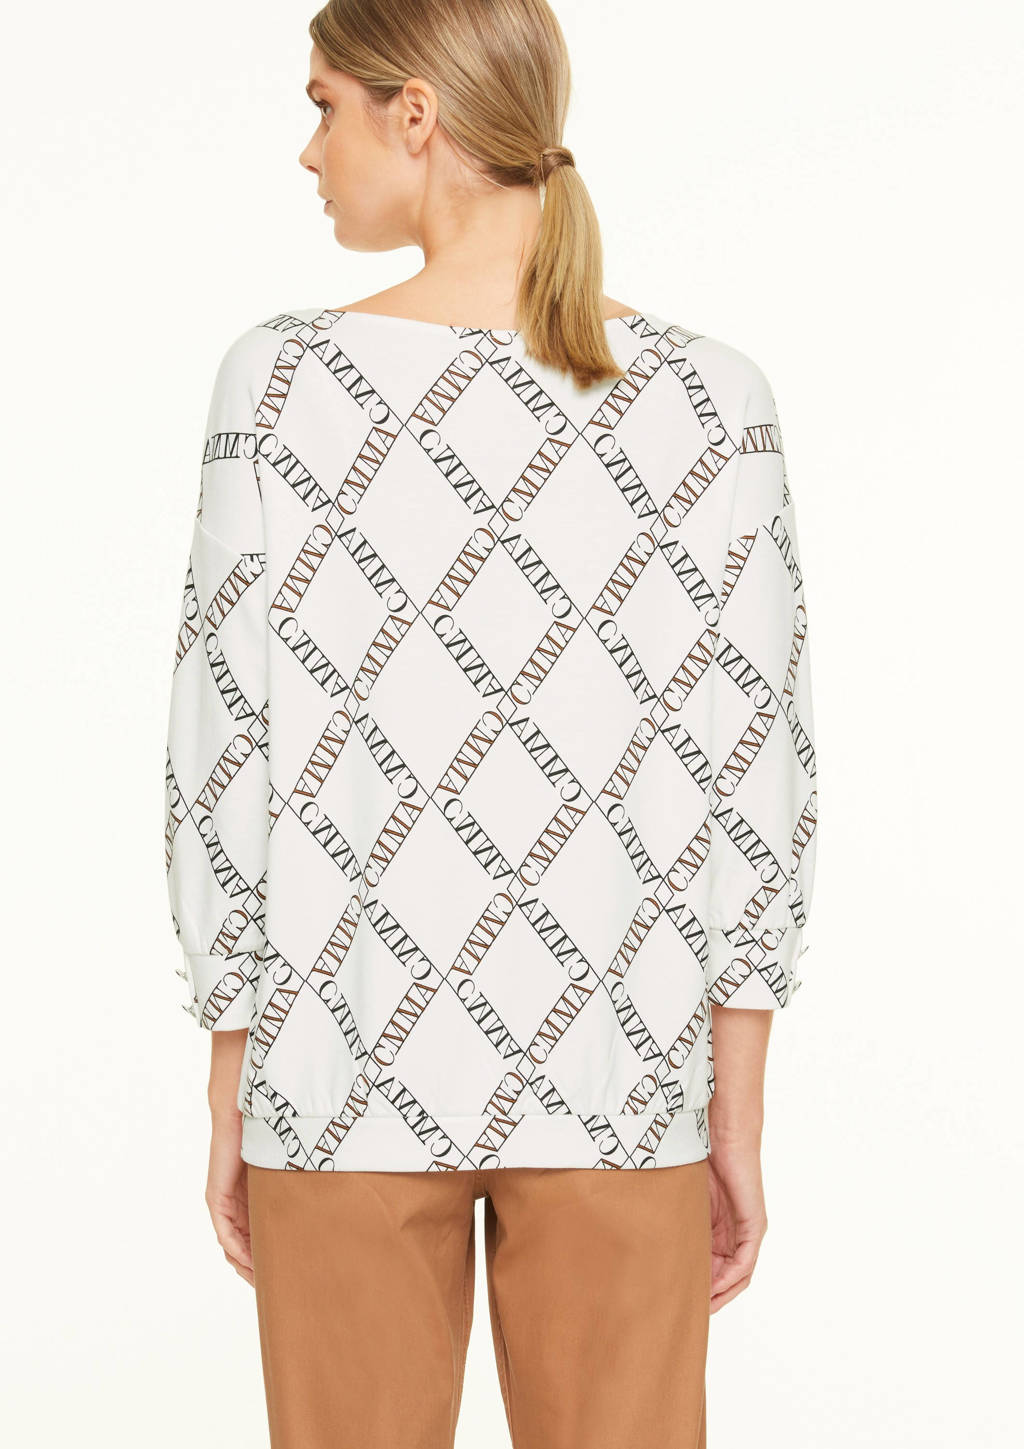 comma top met all over print wit/zwart, Wit/zwart